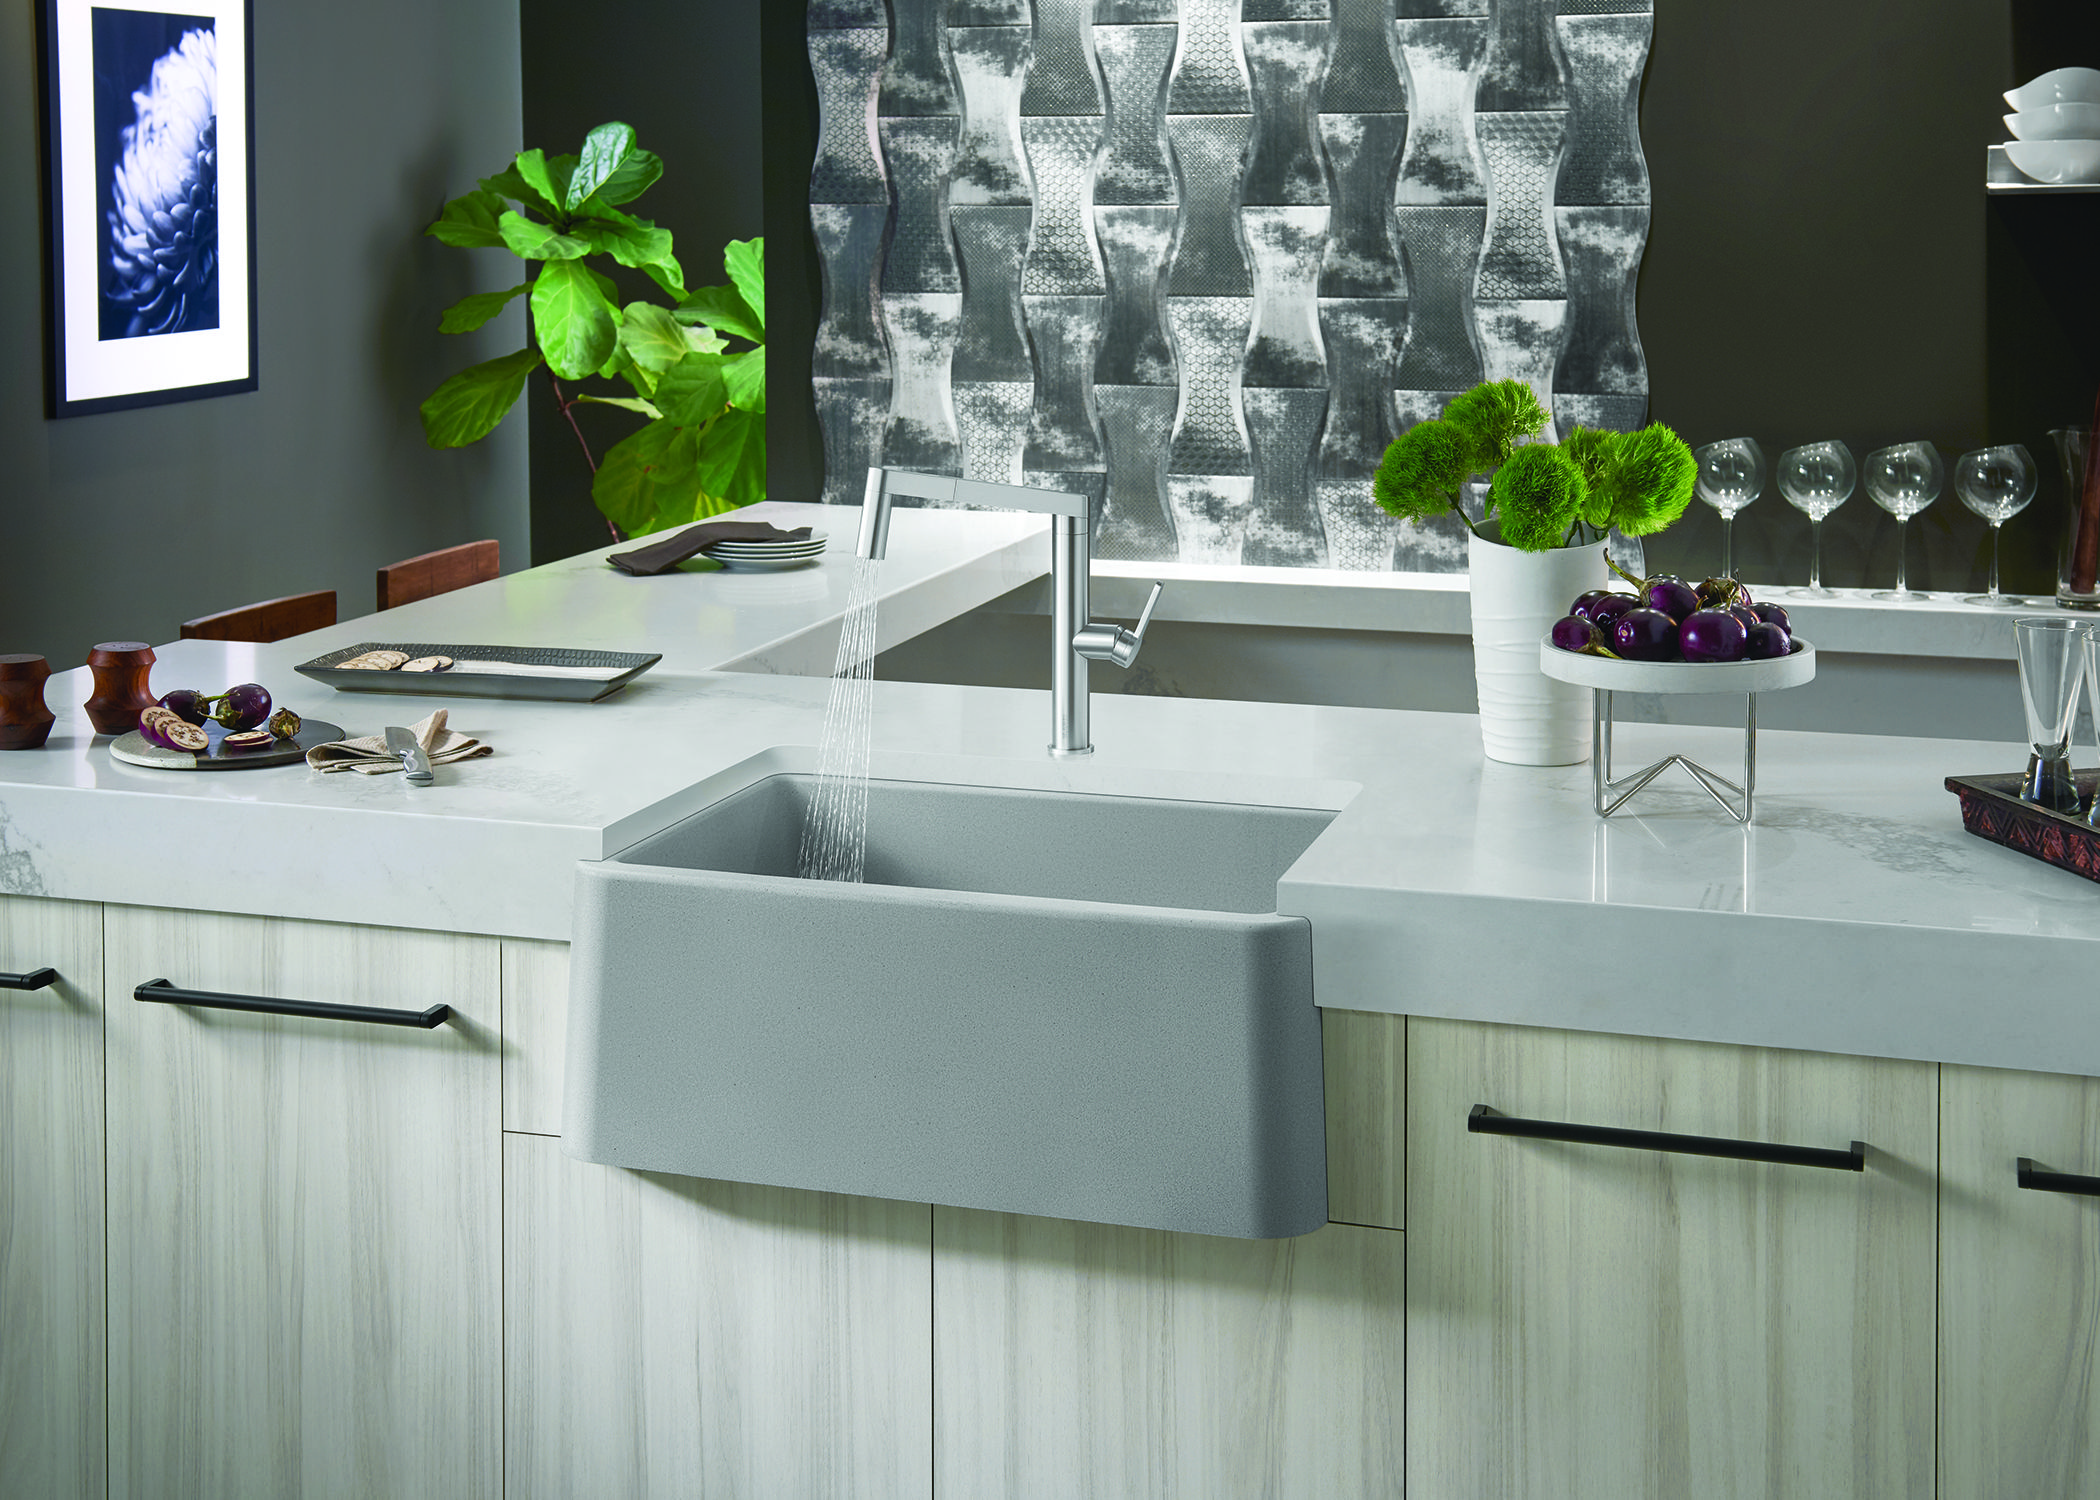 In Small Spaces Large Spaces And Anything In Between Farmhouse Sinks Are The Perfect Addition To Any Kitchen Des Kitchen Design Farmhouse Sink Luxe Interiors